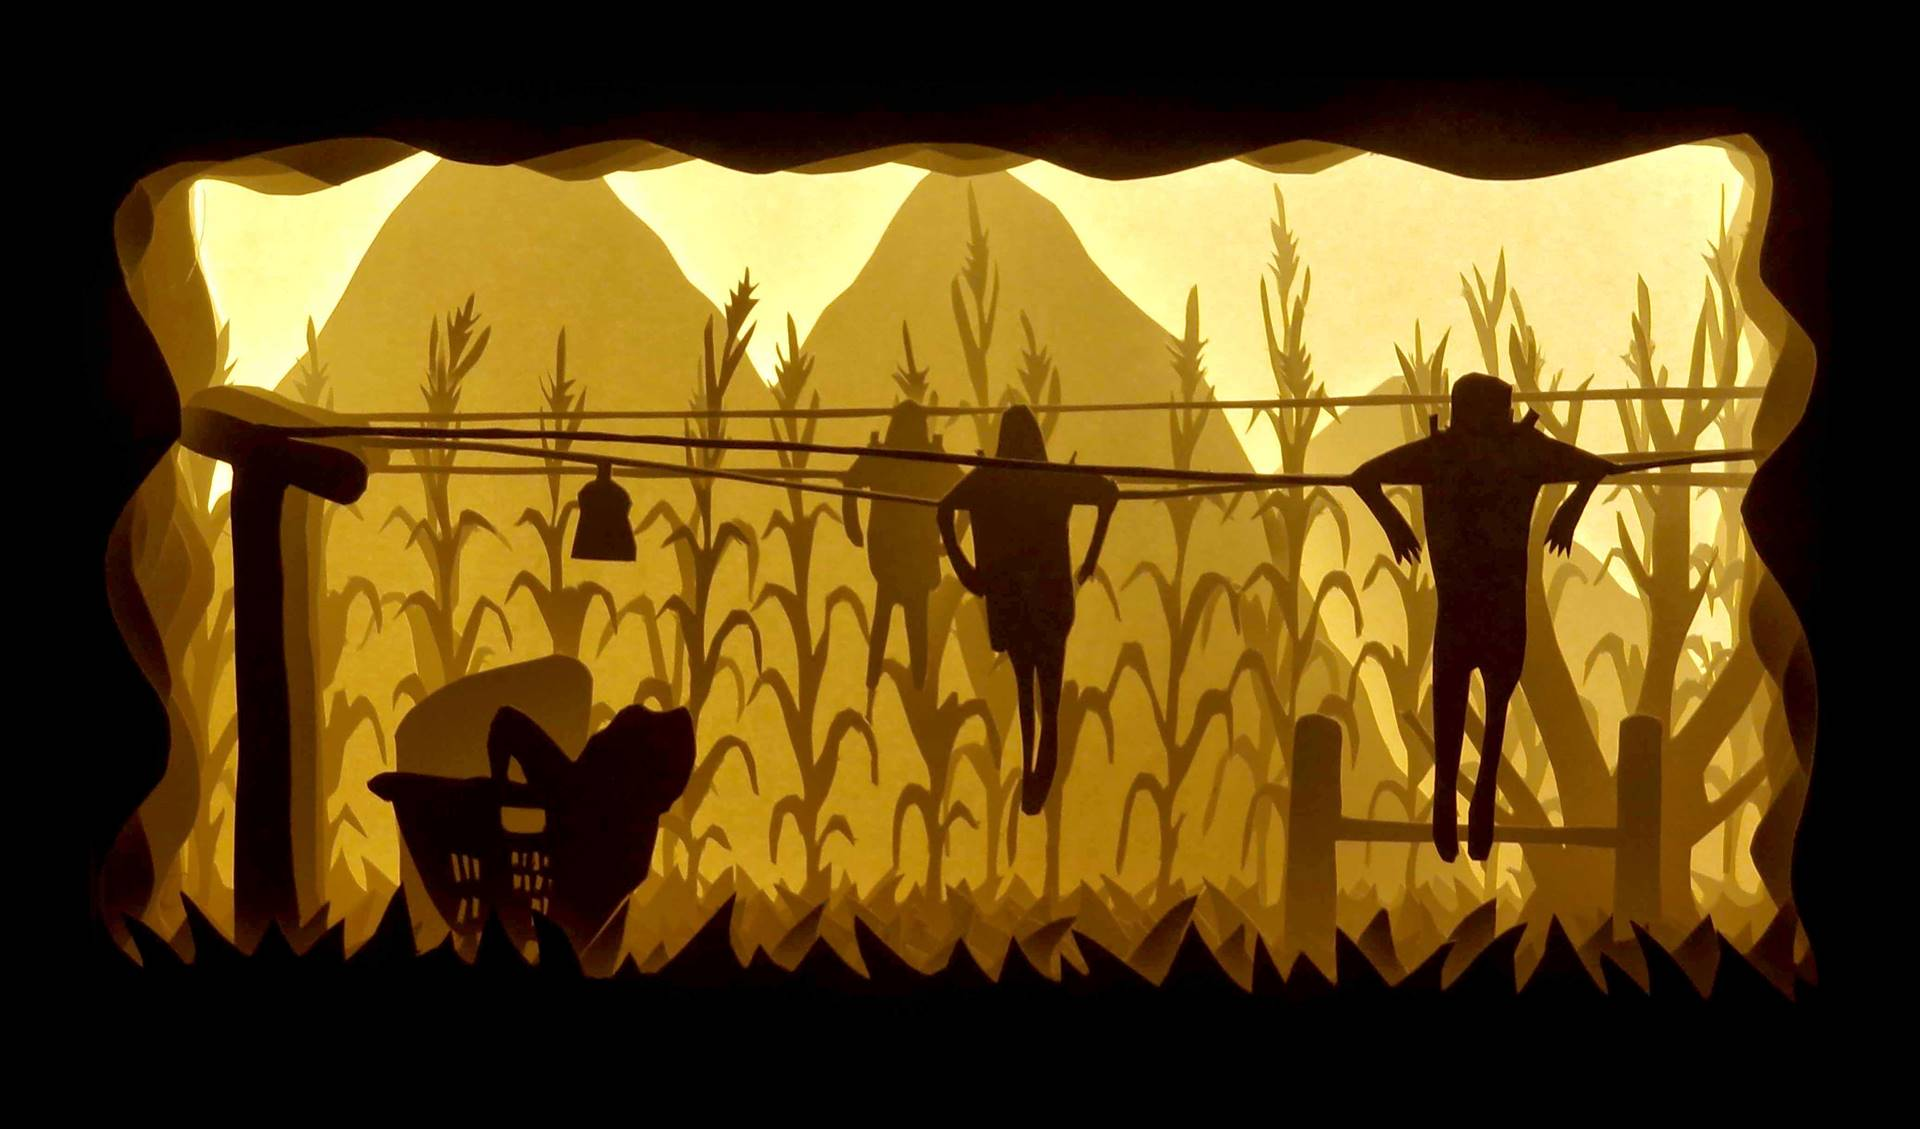 Layers of cut paper mountains, corn stalks in a field, and people attached to a laundry line